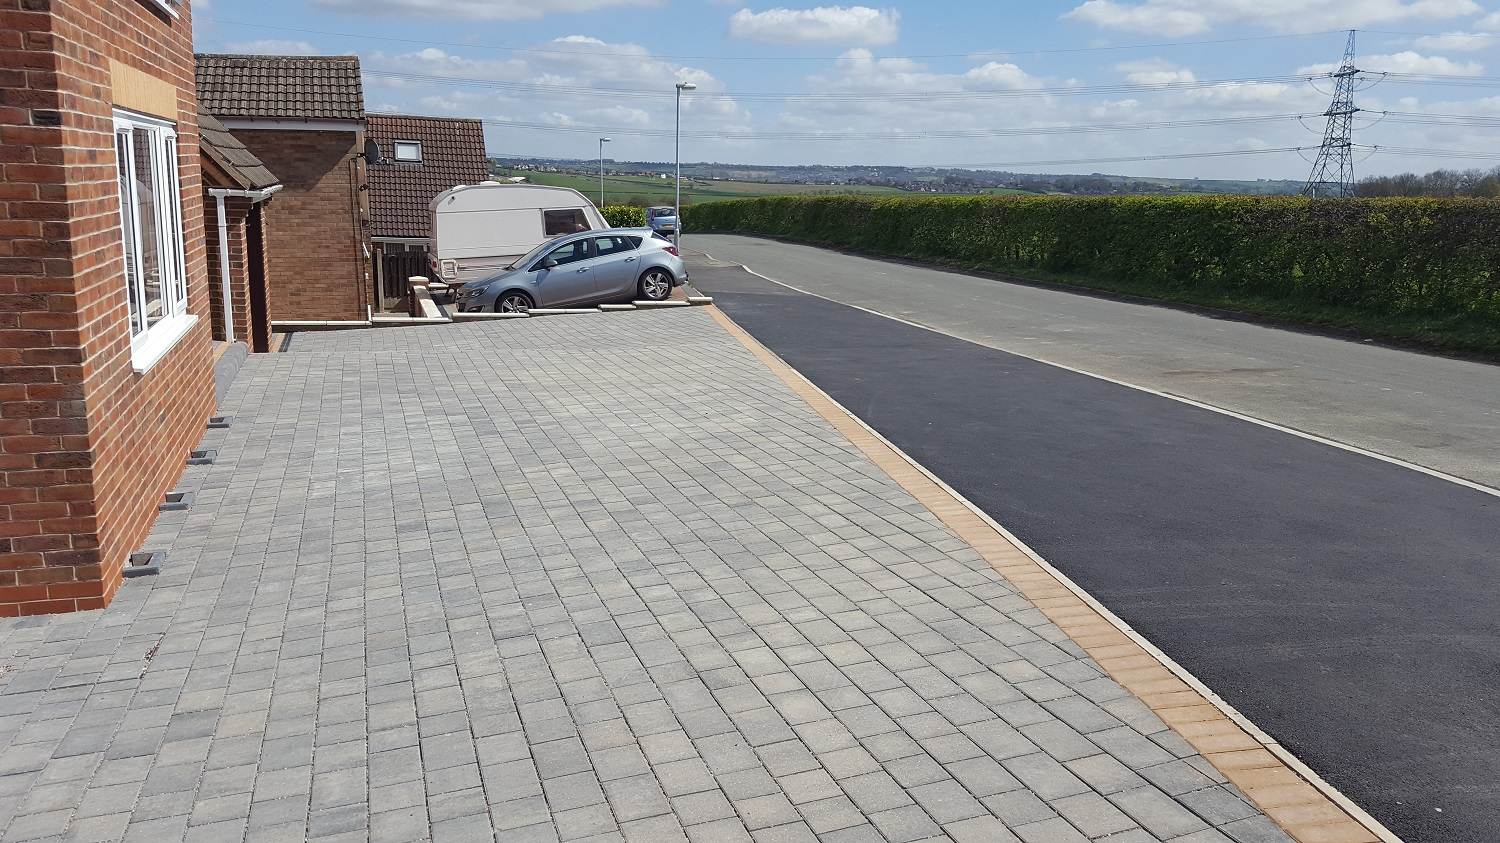 C10 Plaspave Modena Granite Stone Block Paving Driveway at Inkersall in Chesterfield